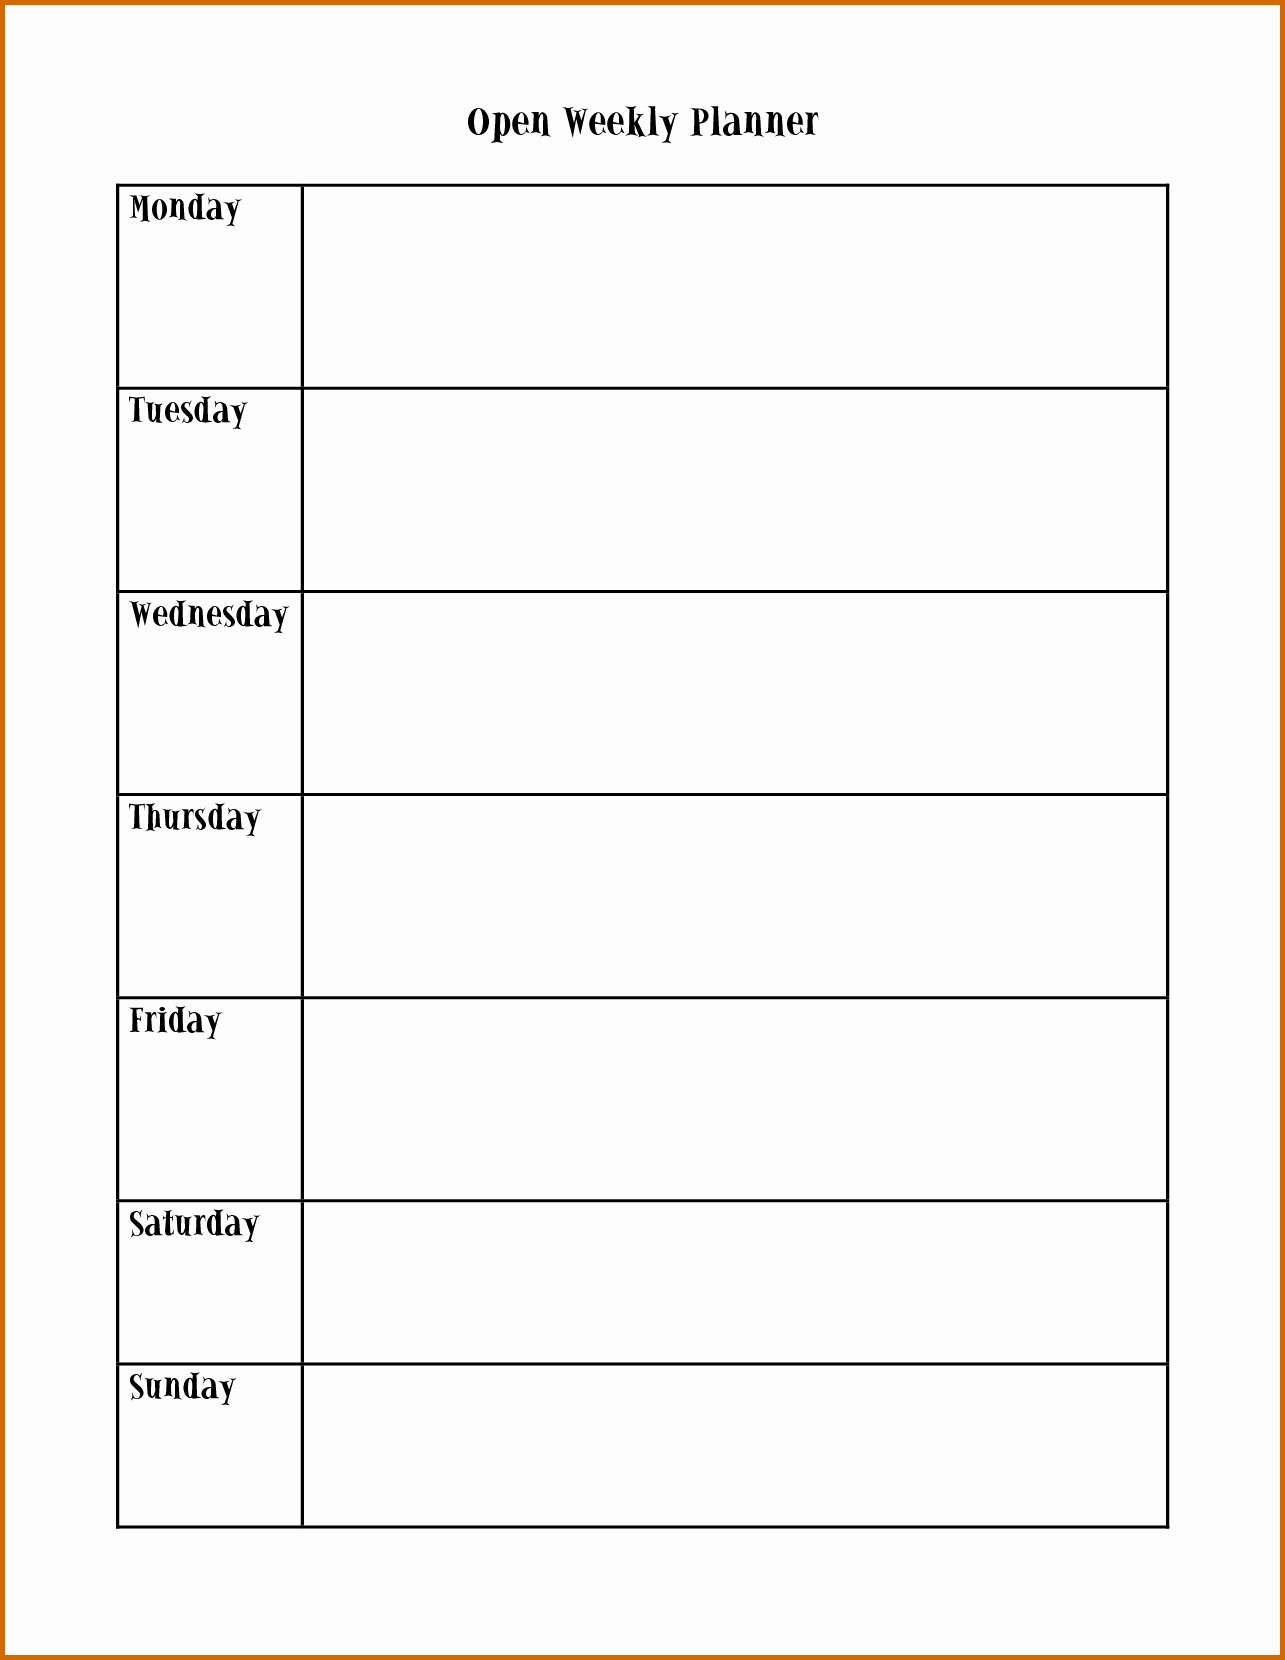 Schedule Plate Monday Through Friday Weekly Calendar Word | Smorad within Monday Through Friday Planner Template